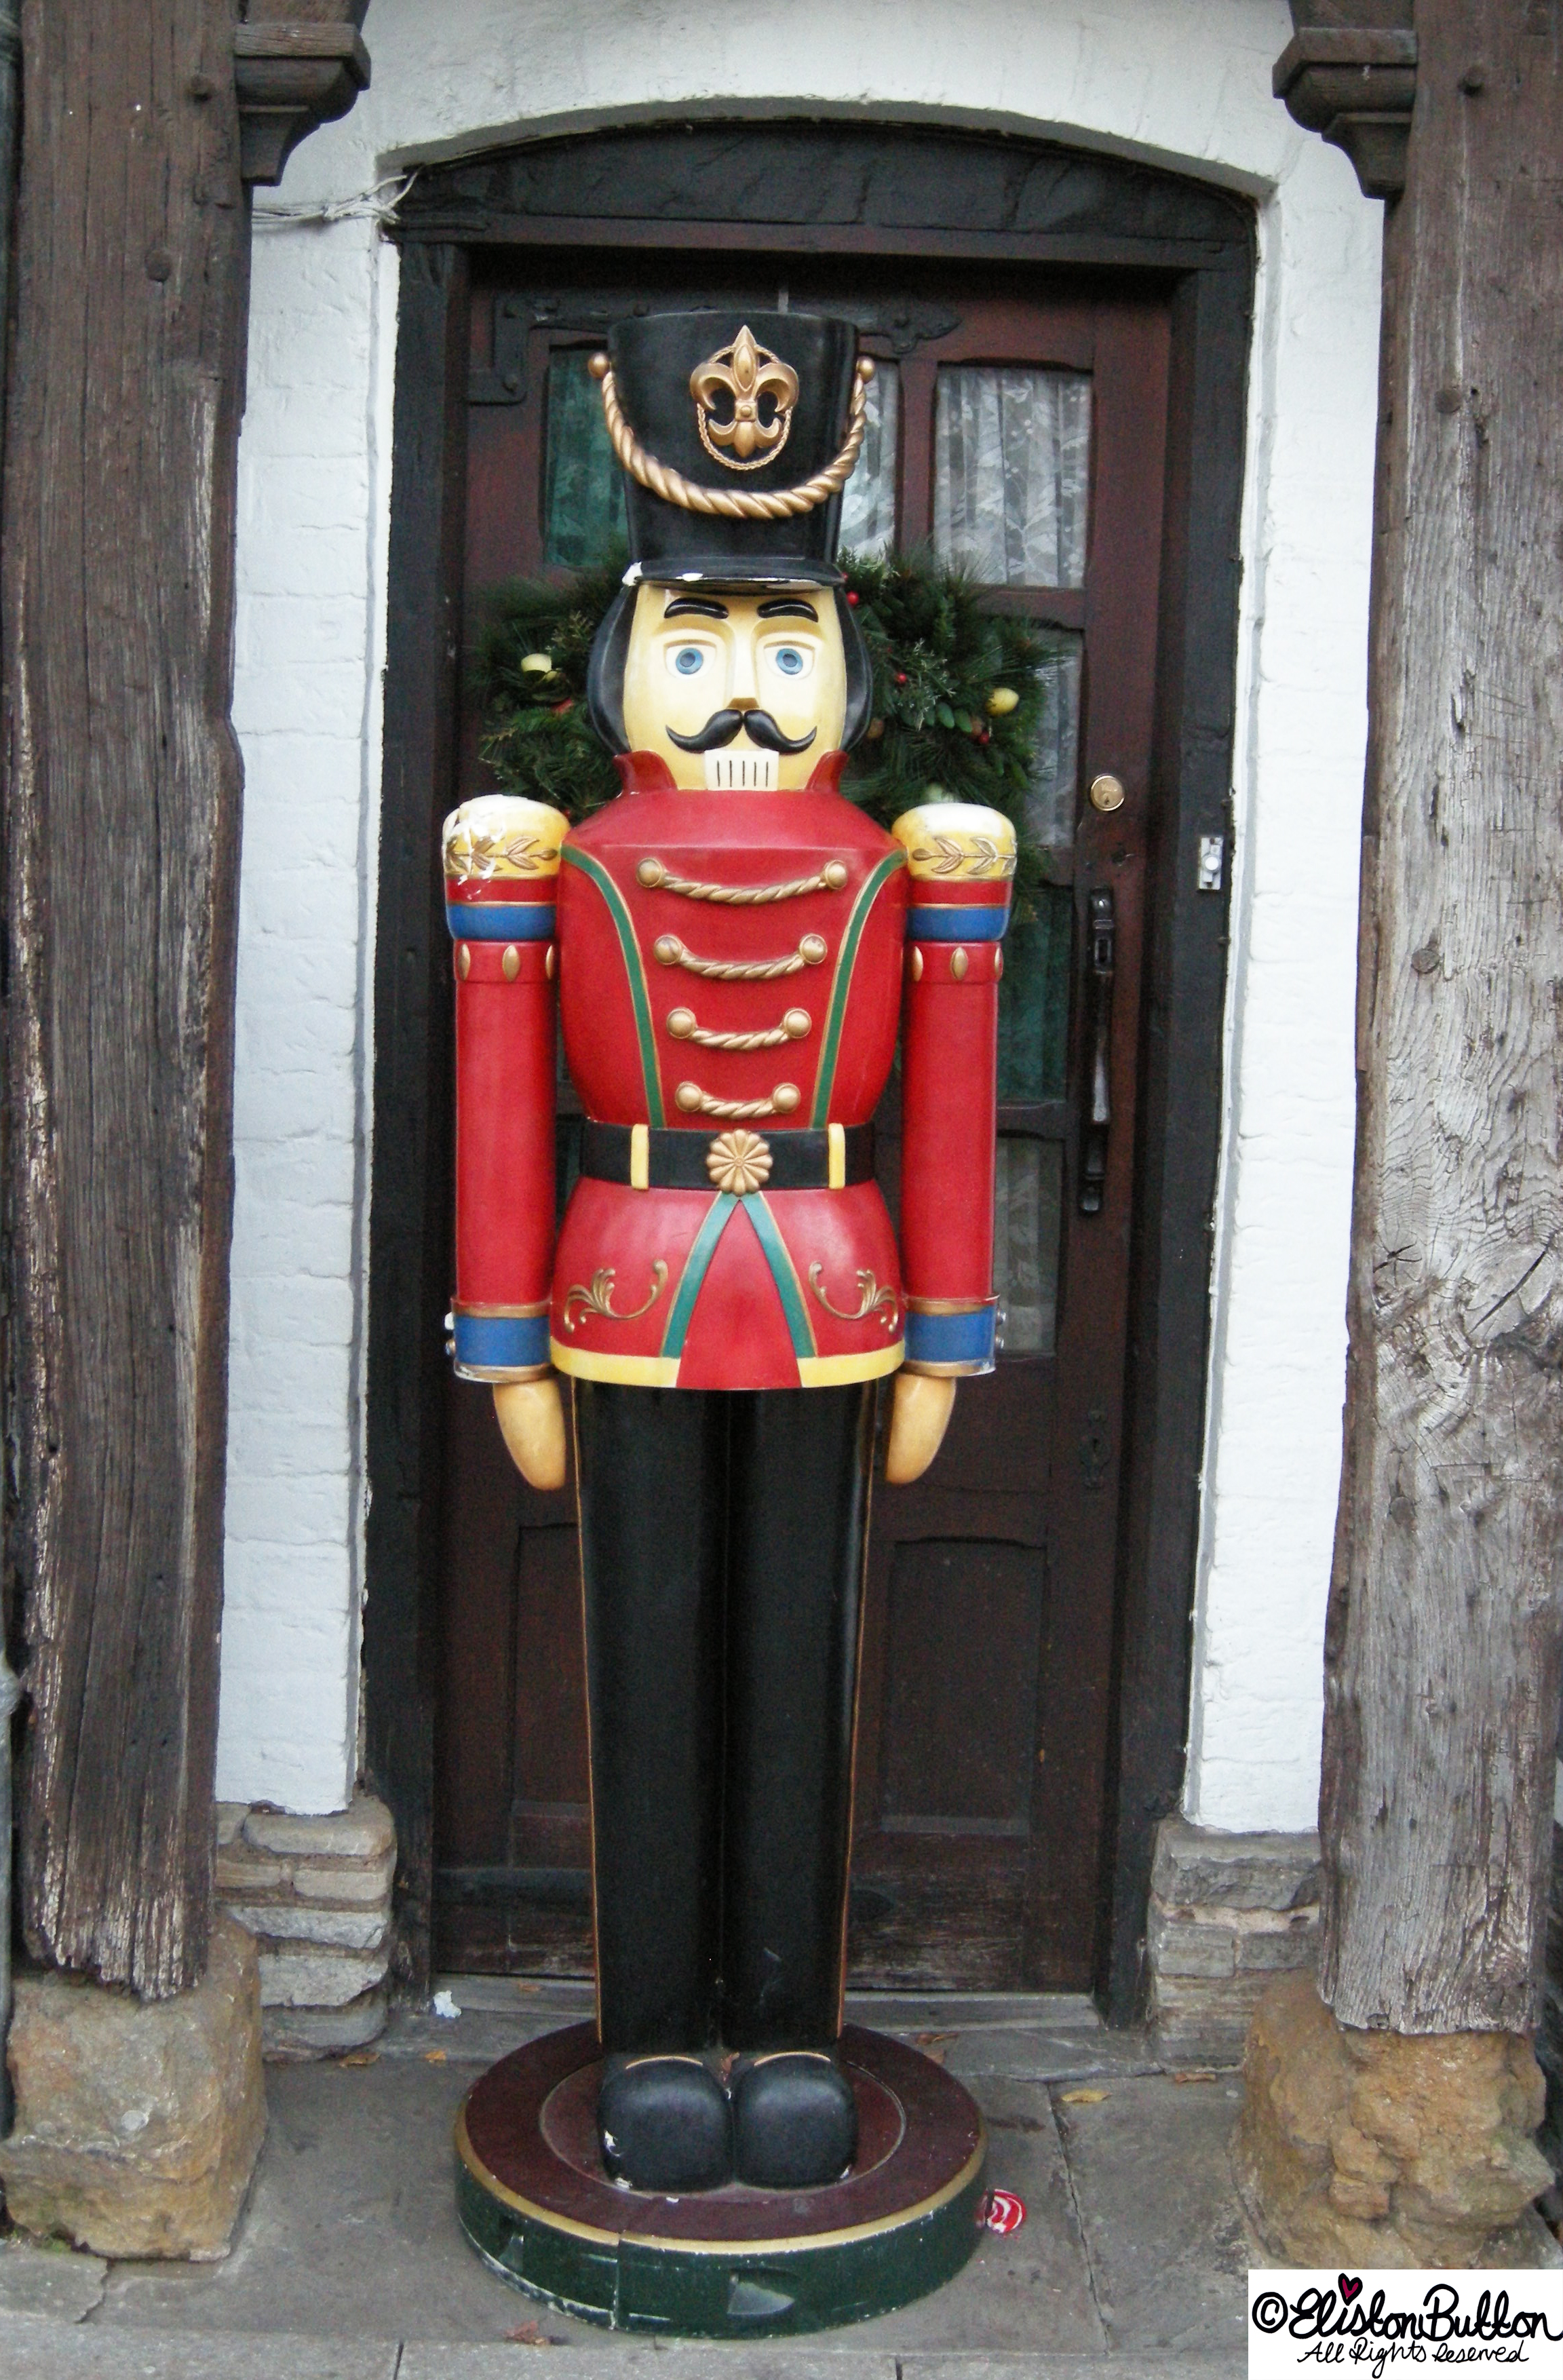 Nutcracker Statue in Stratford-upon-Avon - Hello Winter... at www.elistonbutton.com - Eliston Button - That Crafty Kid – Art, Design, Craft & Adventure.